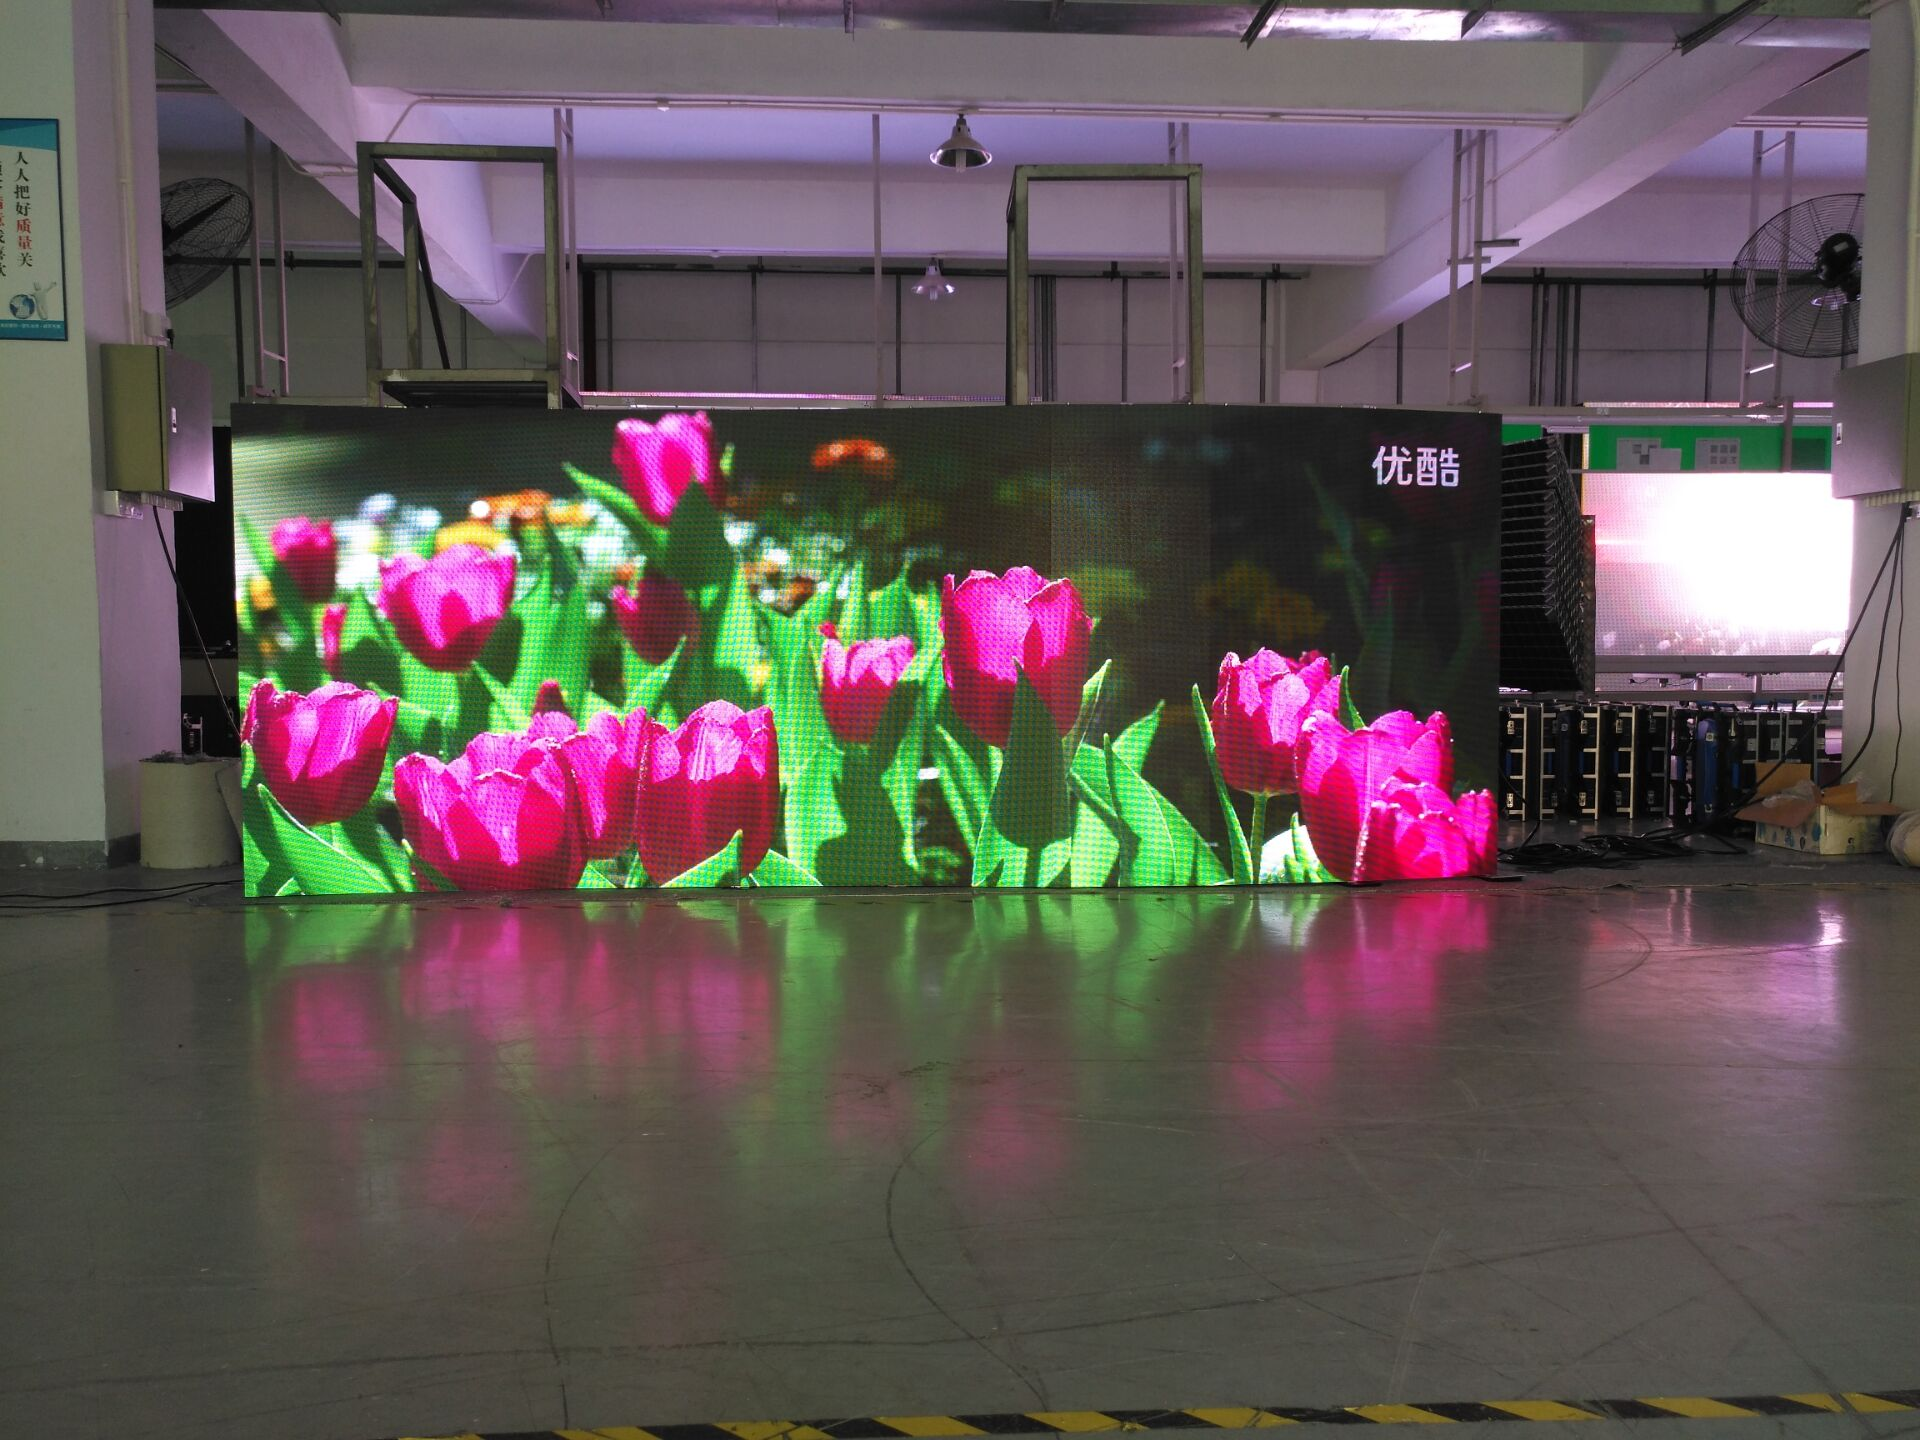 Indoor p3.91 rental LED display for stage and events